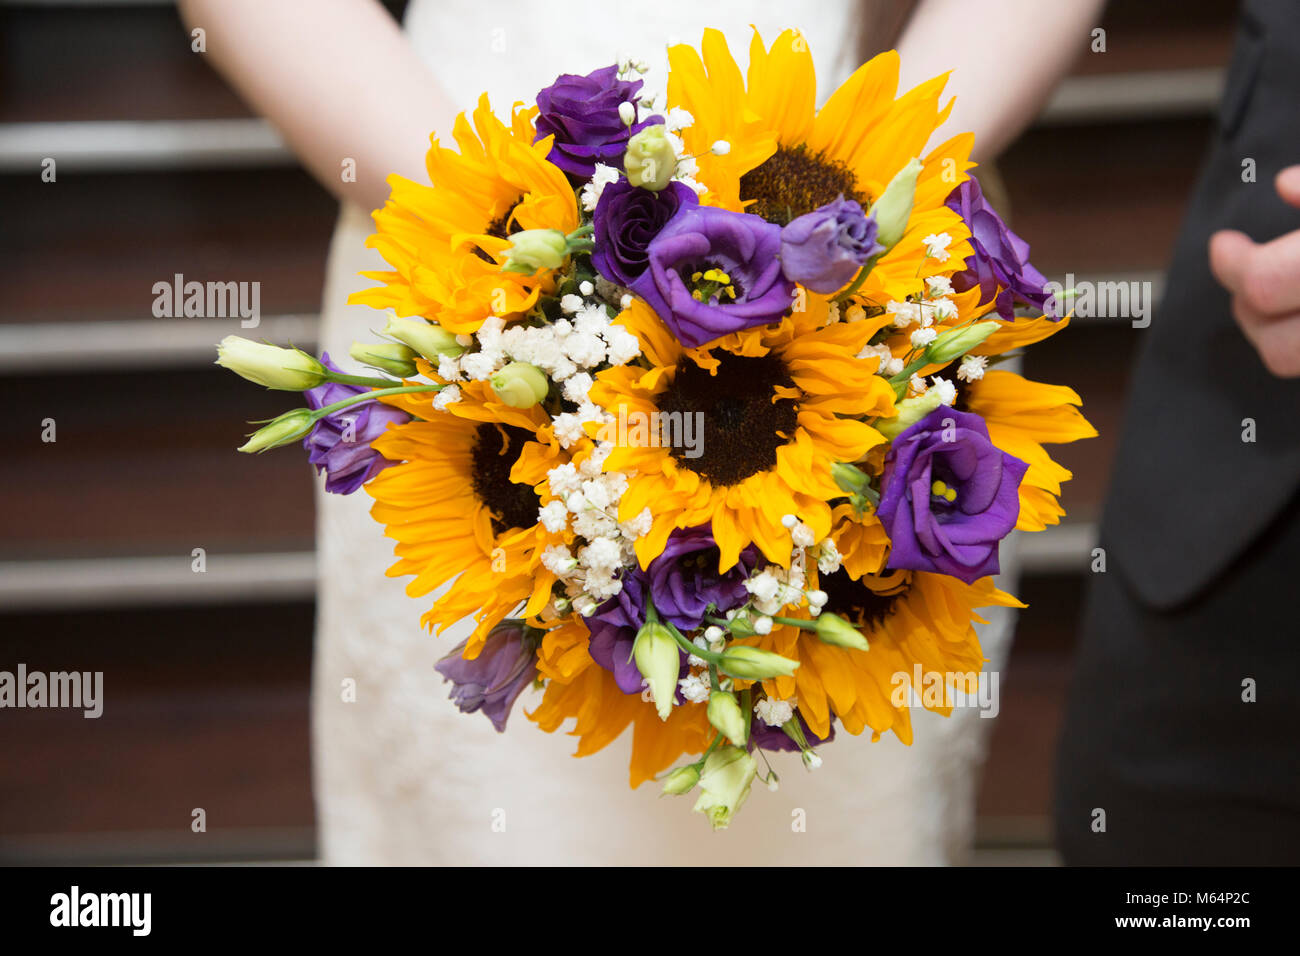 Sunflower wedding bouquet stock photo 175896740 alamy sunflower wedding bouquet junglespirit Images